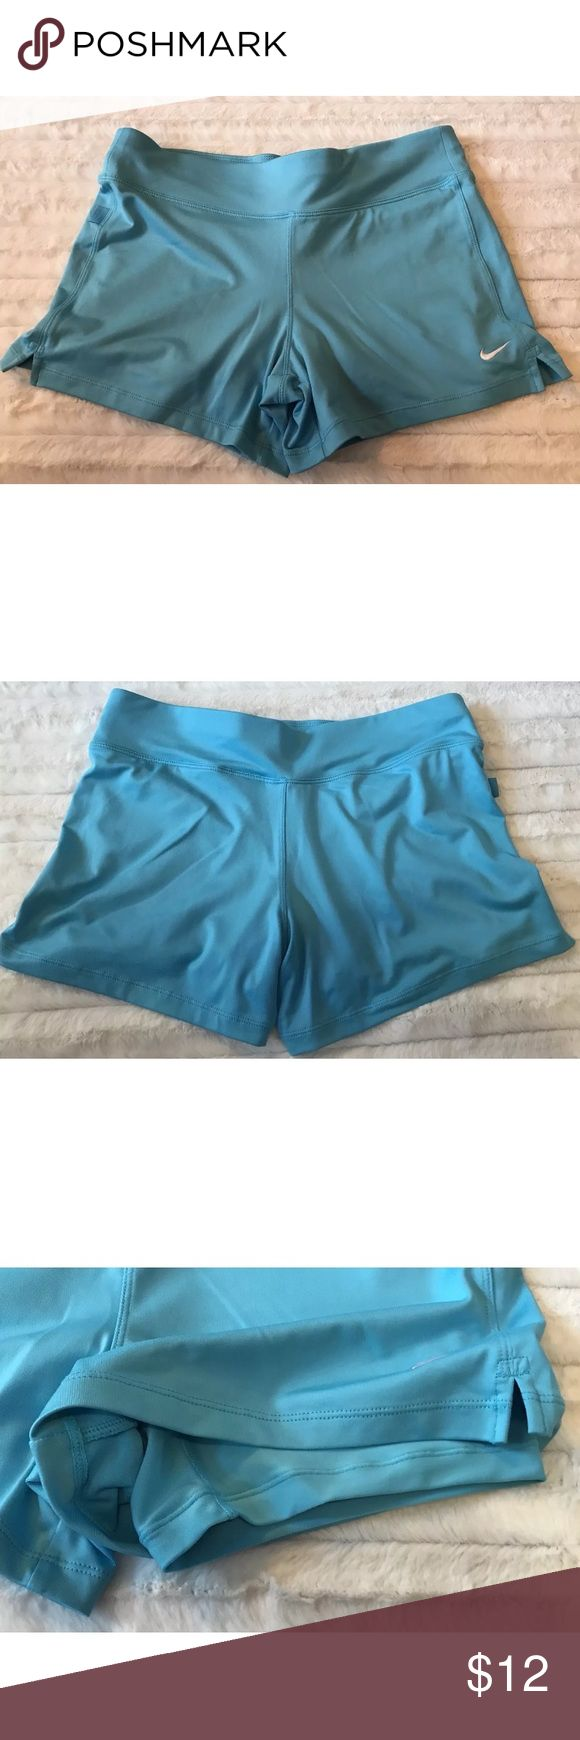 Nike Tennis Shorts / Skort NIKE Dri Fit Tennis Shorts With Attached Short Tights Size XS XSmall Blue Layer Nike Shorts Skorts